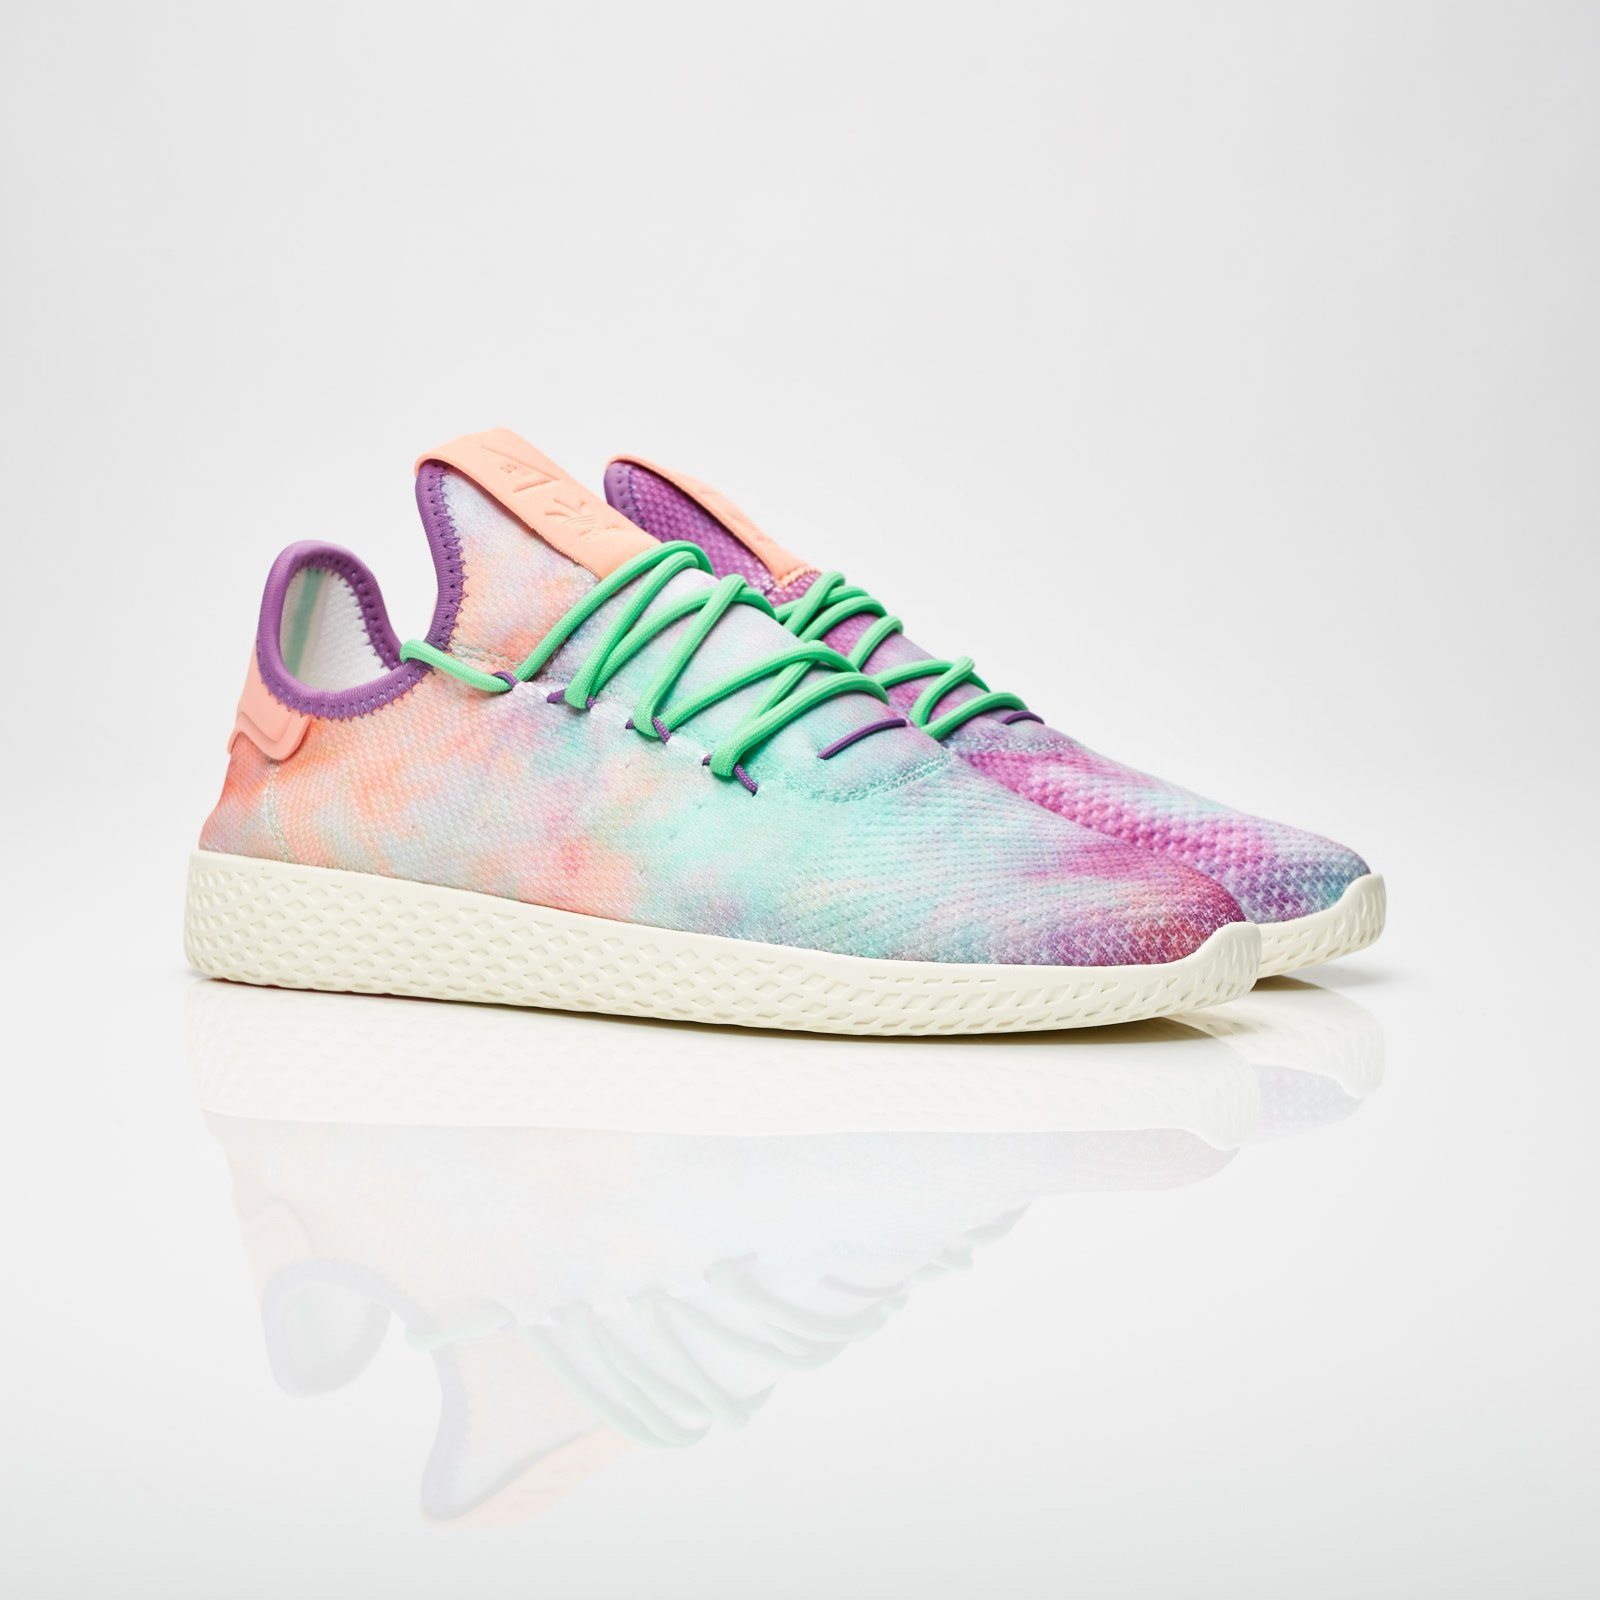 Adidas By Pharrell Williams Pharrell Williams HU Holi Tennis HU MC sneakers